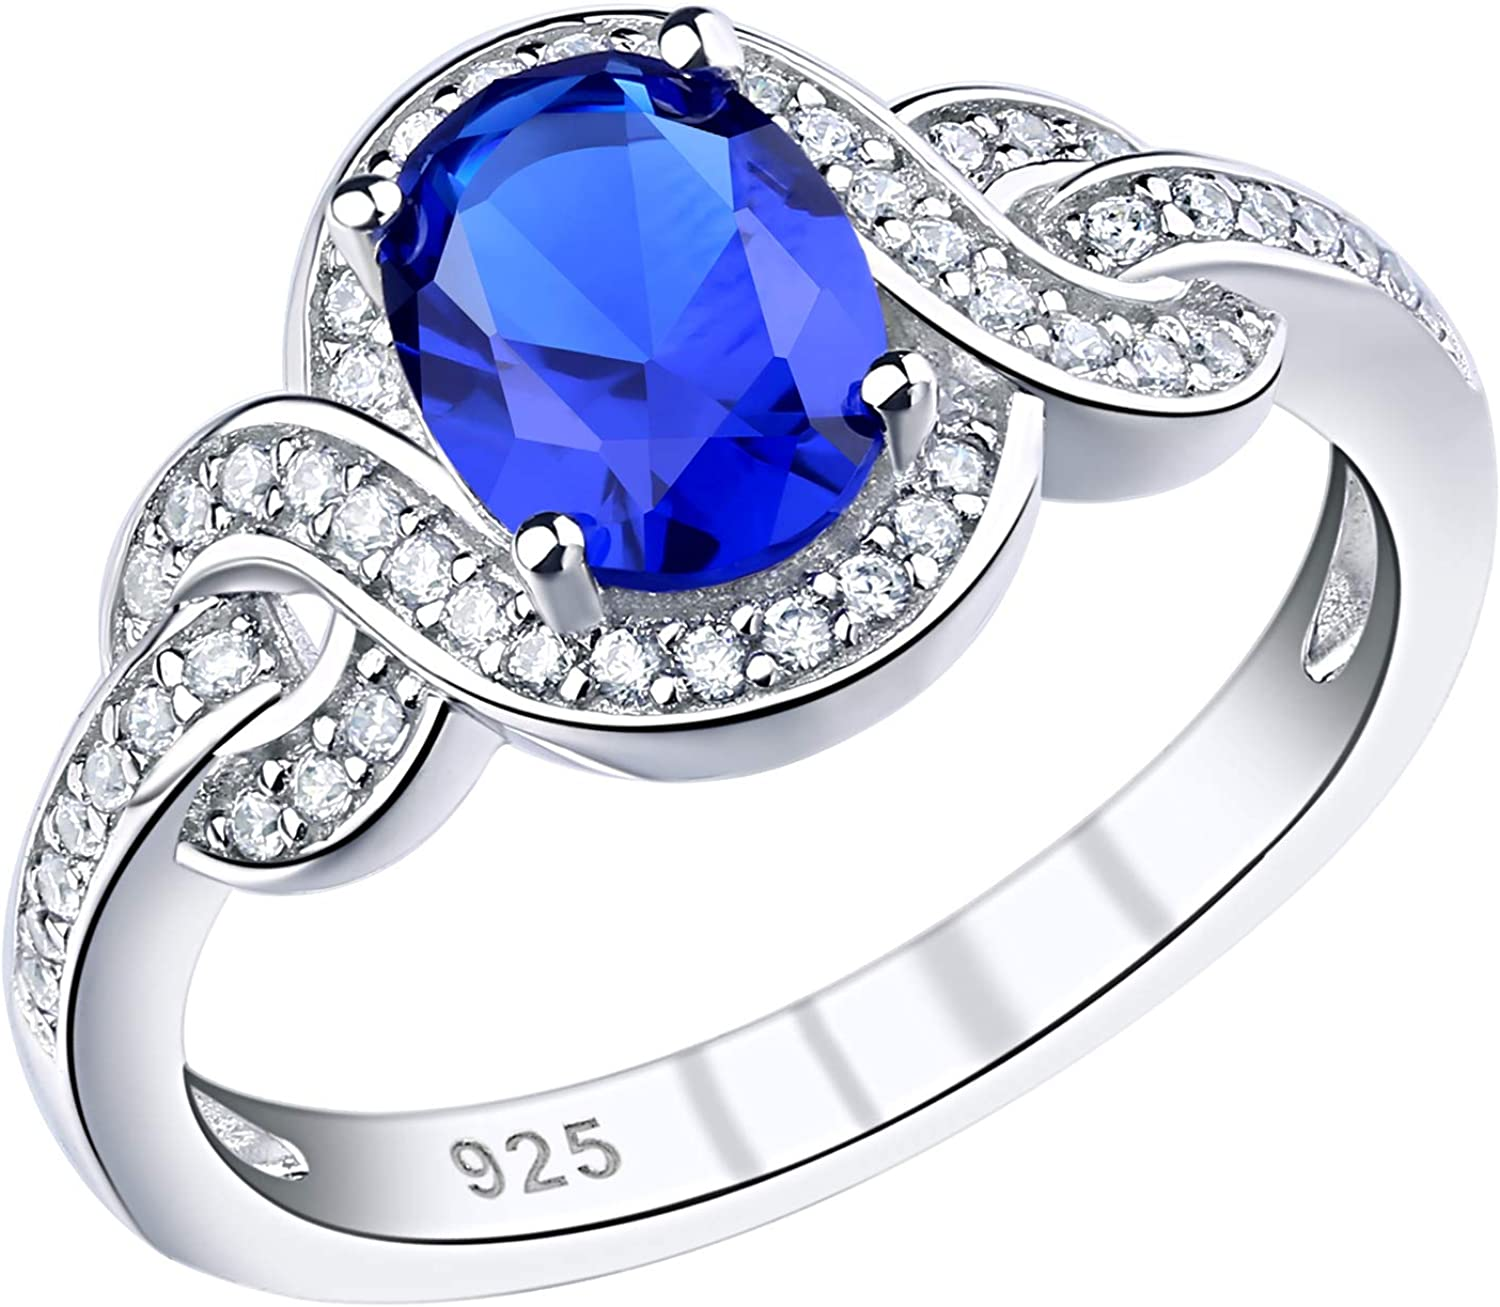 SHELOVES Womens Engagement Ring Blue Oval Cut Cubic Zirconia Promise Rings Sterling Silver Size 5-10